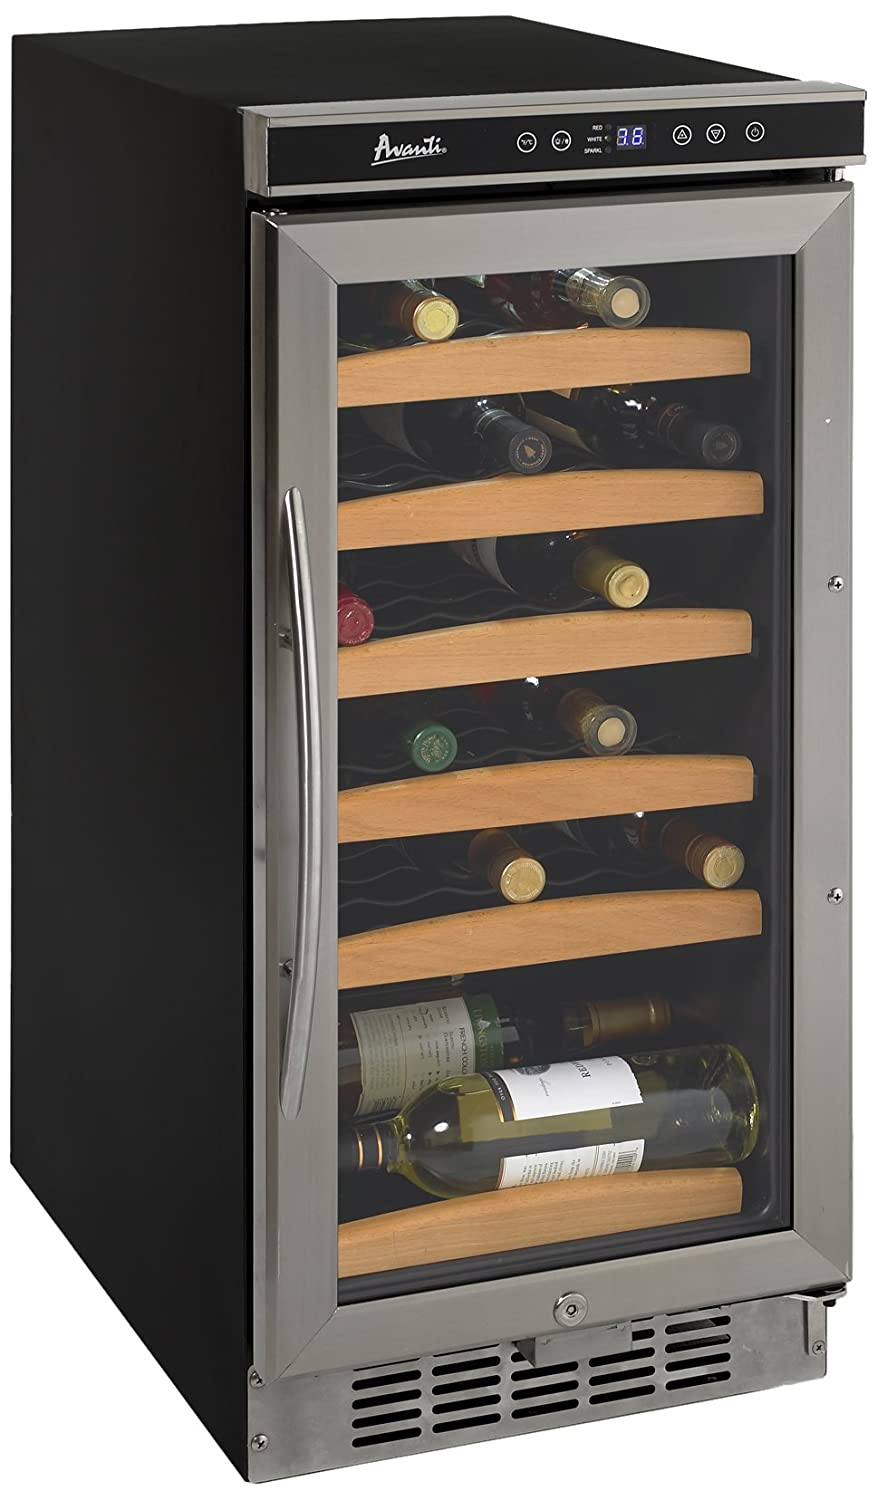 Avanti Wc1500dss 30 Bottle Wine Chiller With Electronic Compressor Assy Diagram Parts List For Model Dpr2260w Danbyparts Display Appliances